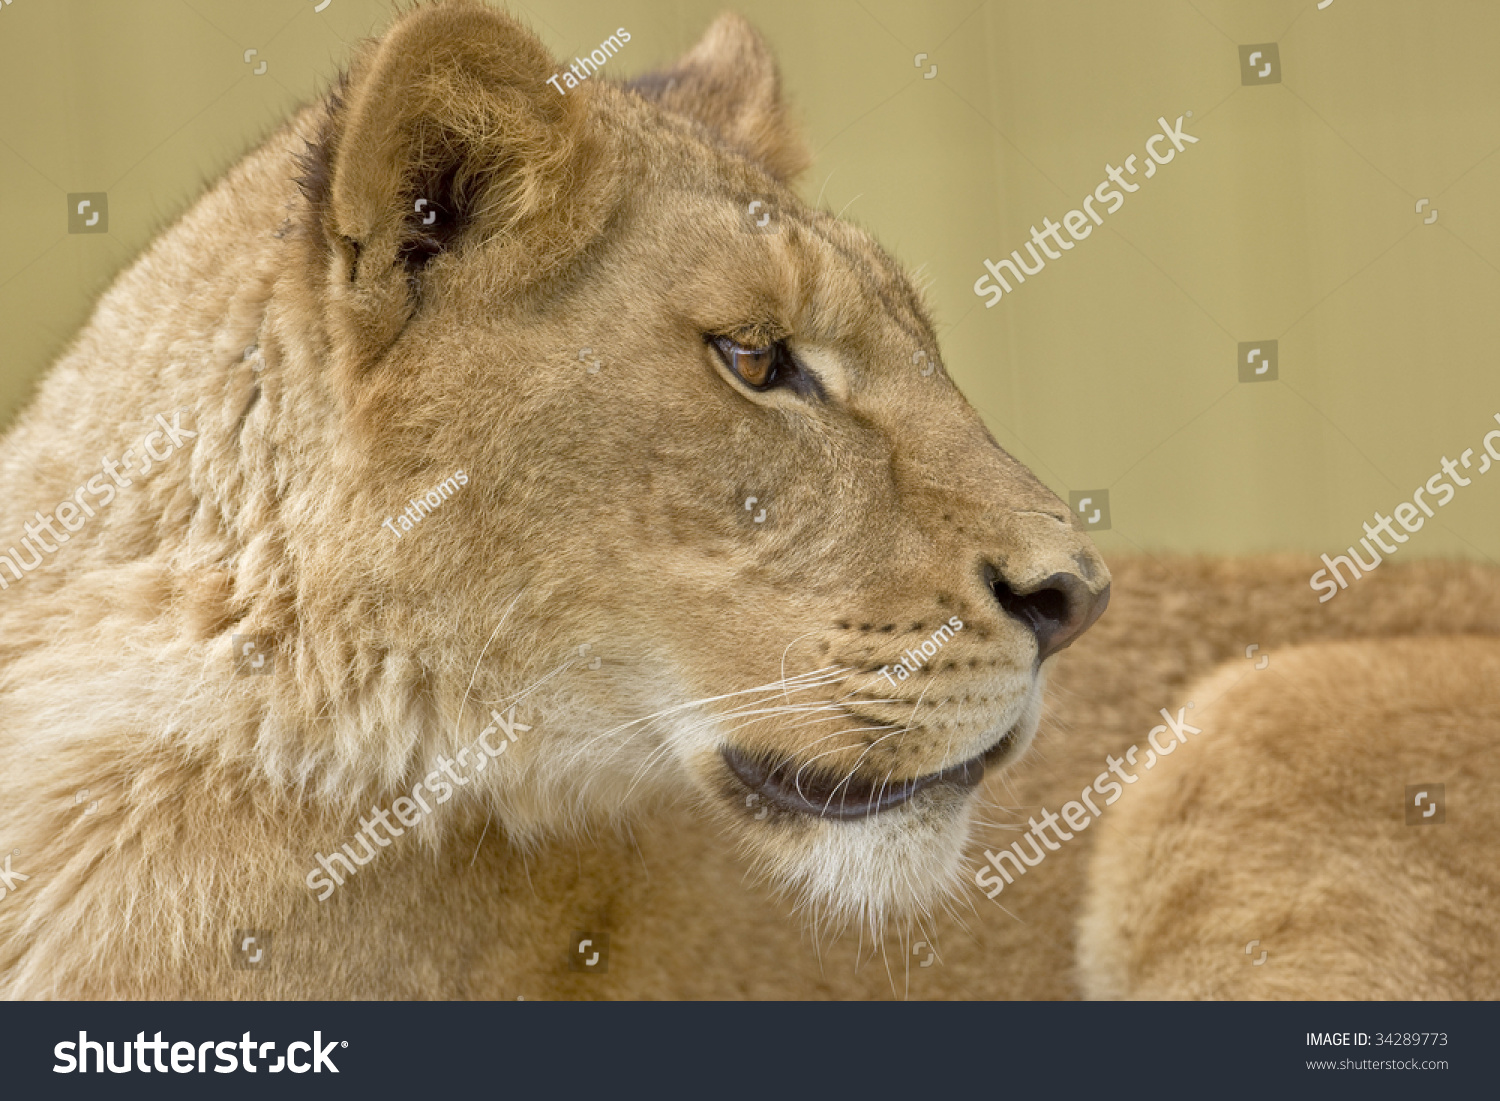 stock-photo-african-lion-profile-3428977